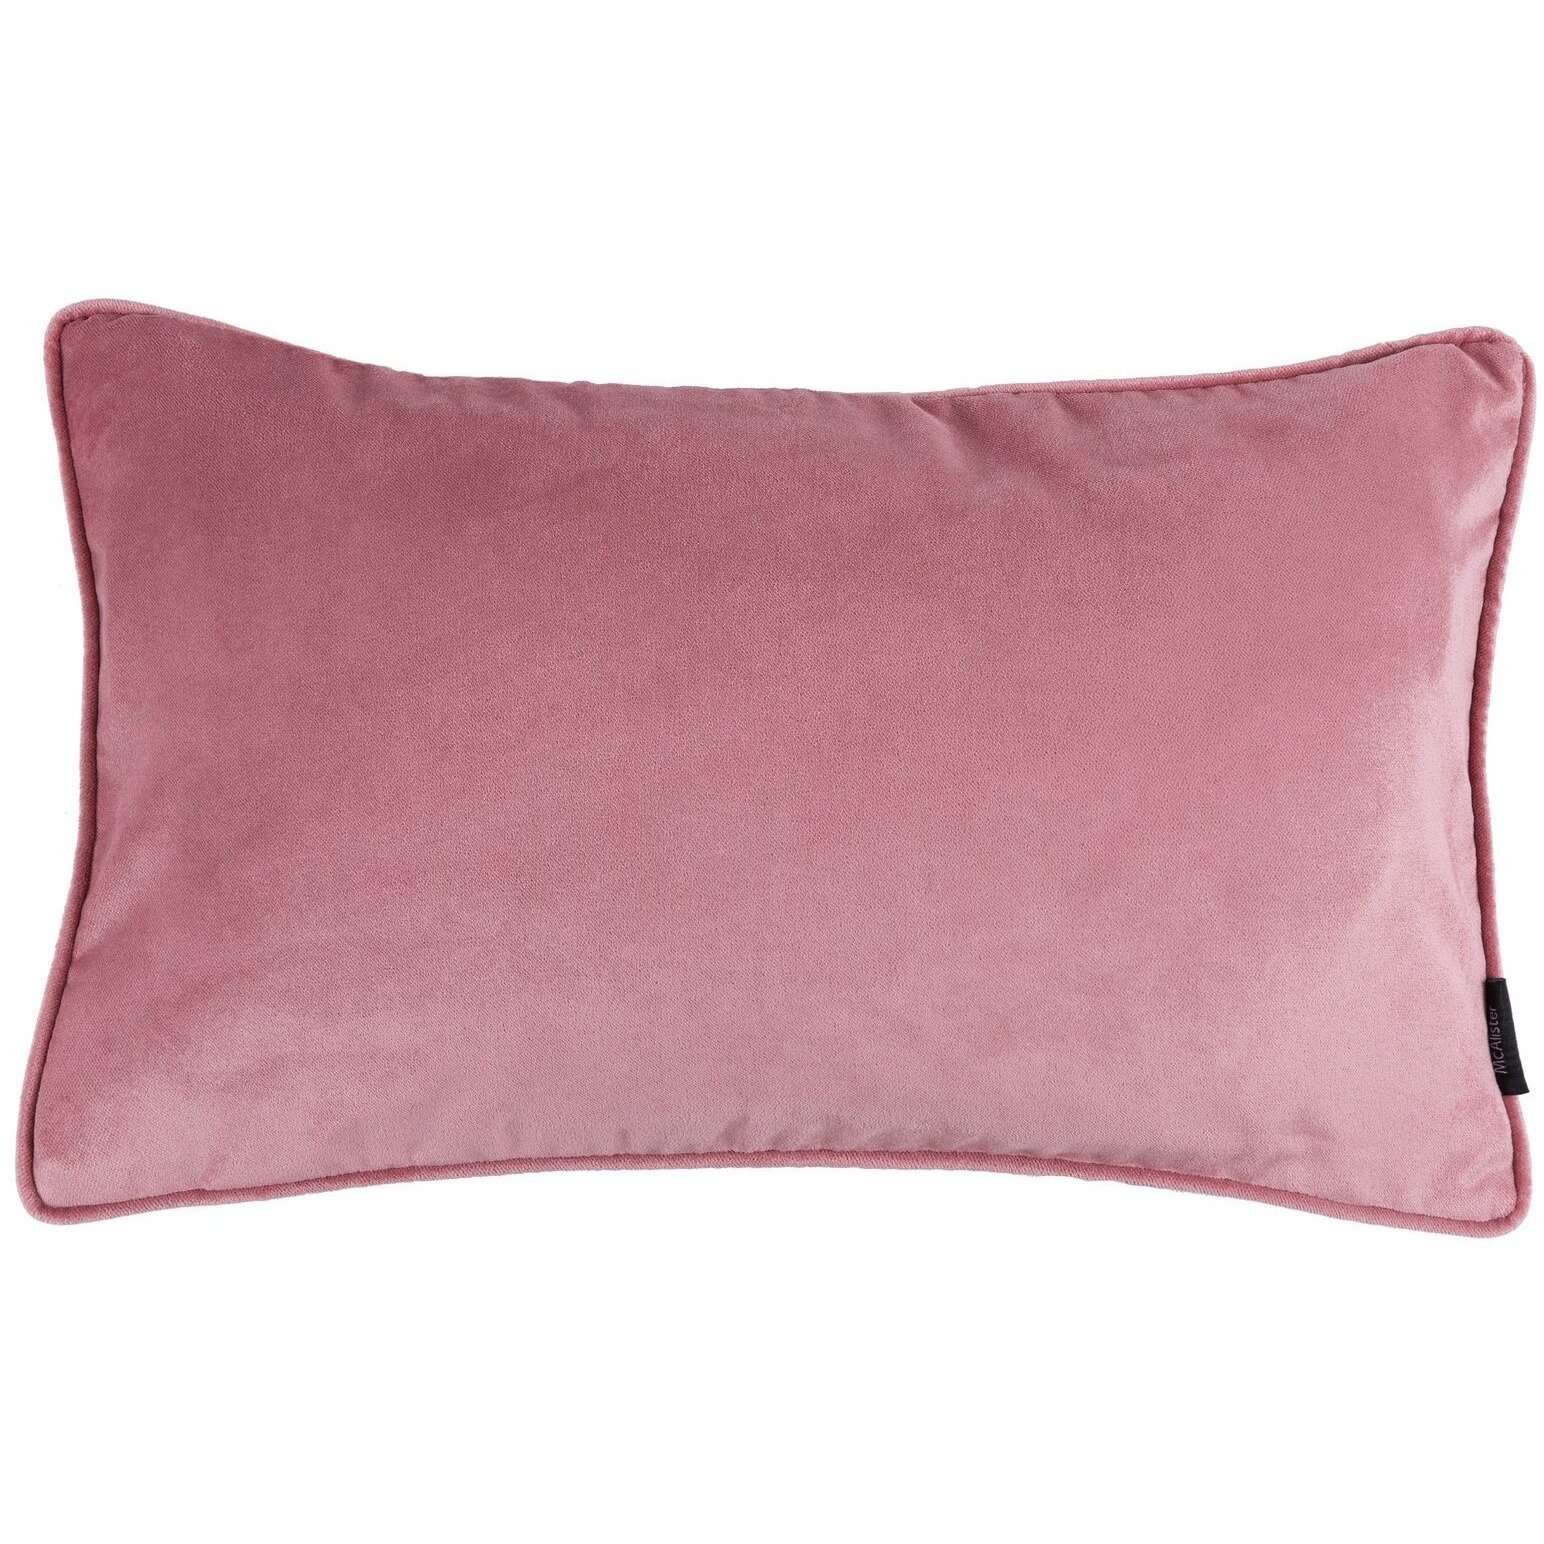 McAlister Textiles Matt Blush Pink Velvet Cushion Cushions and Covers Cover Only 50cm x 30cm